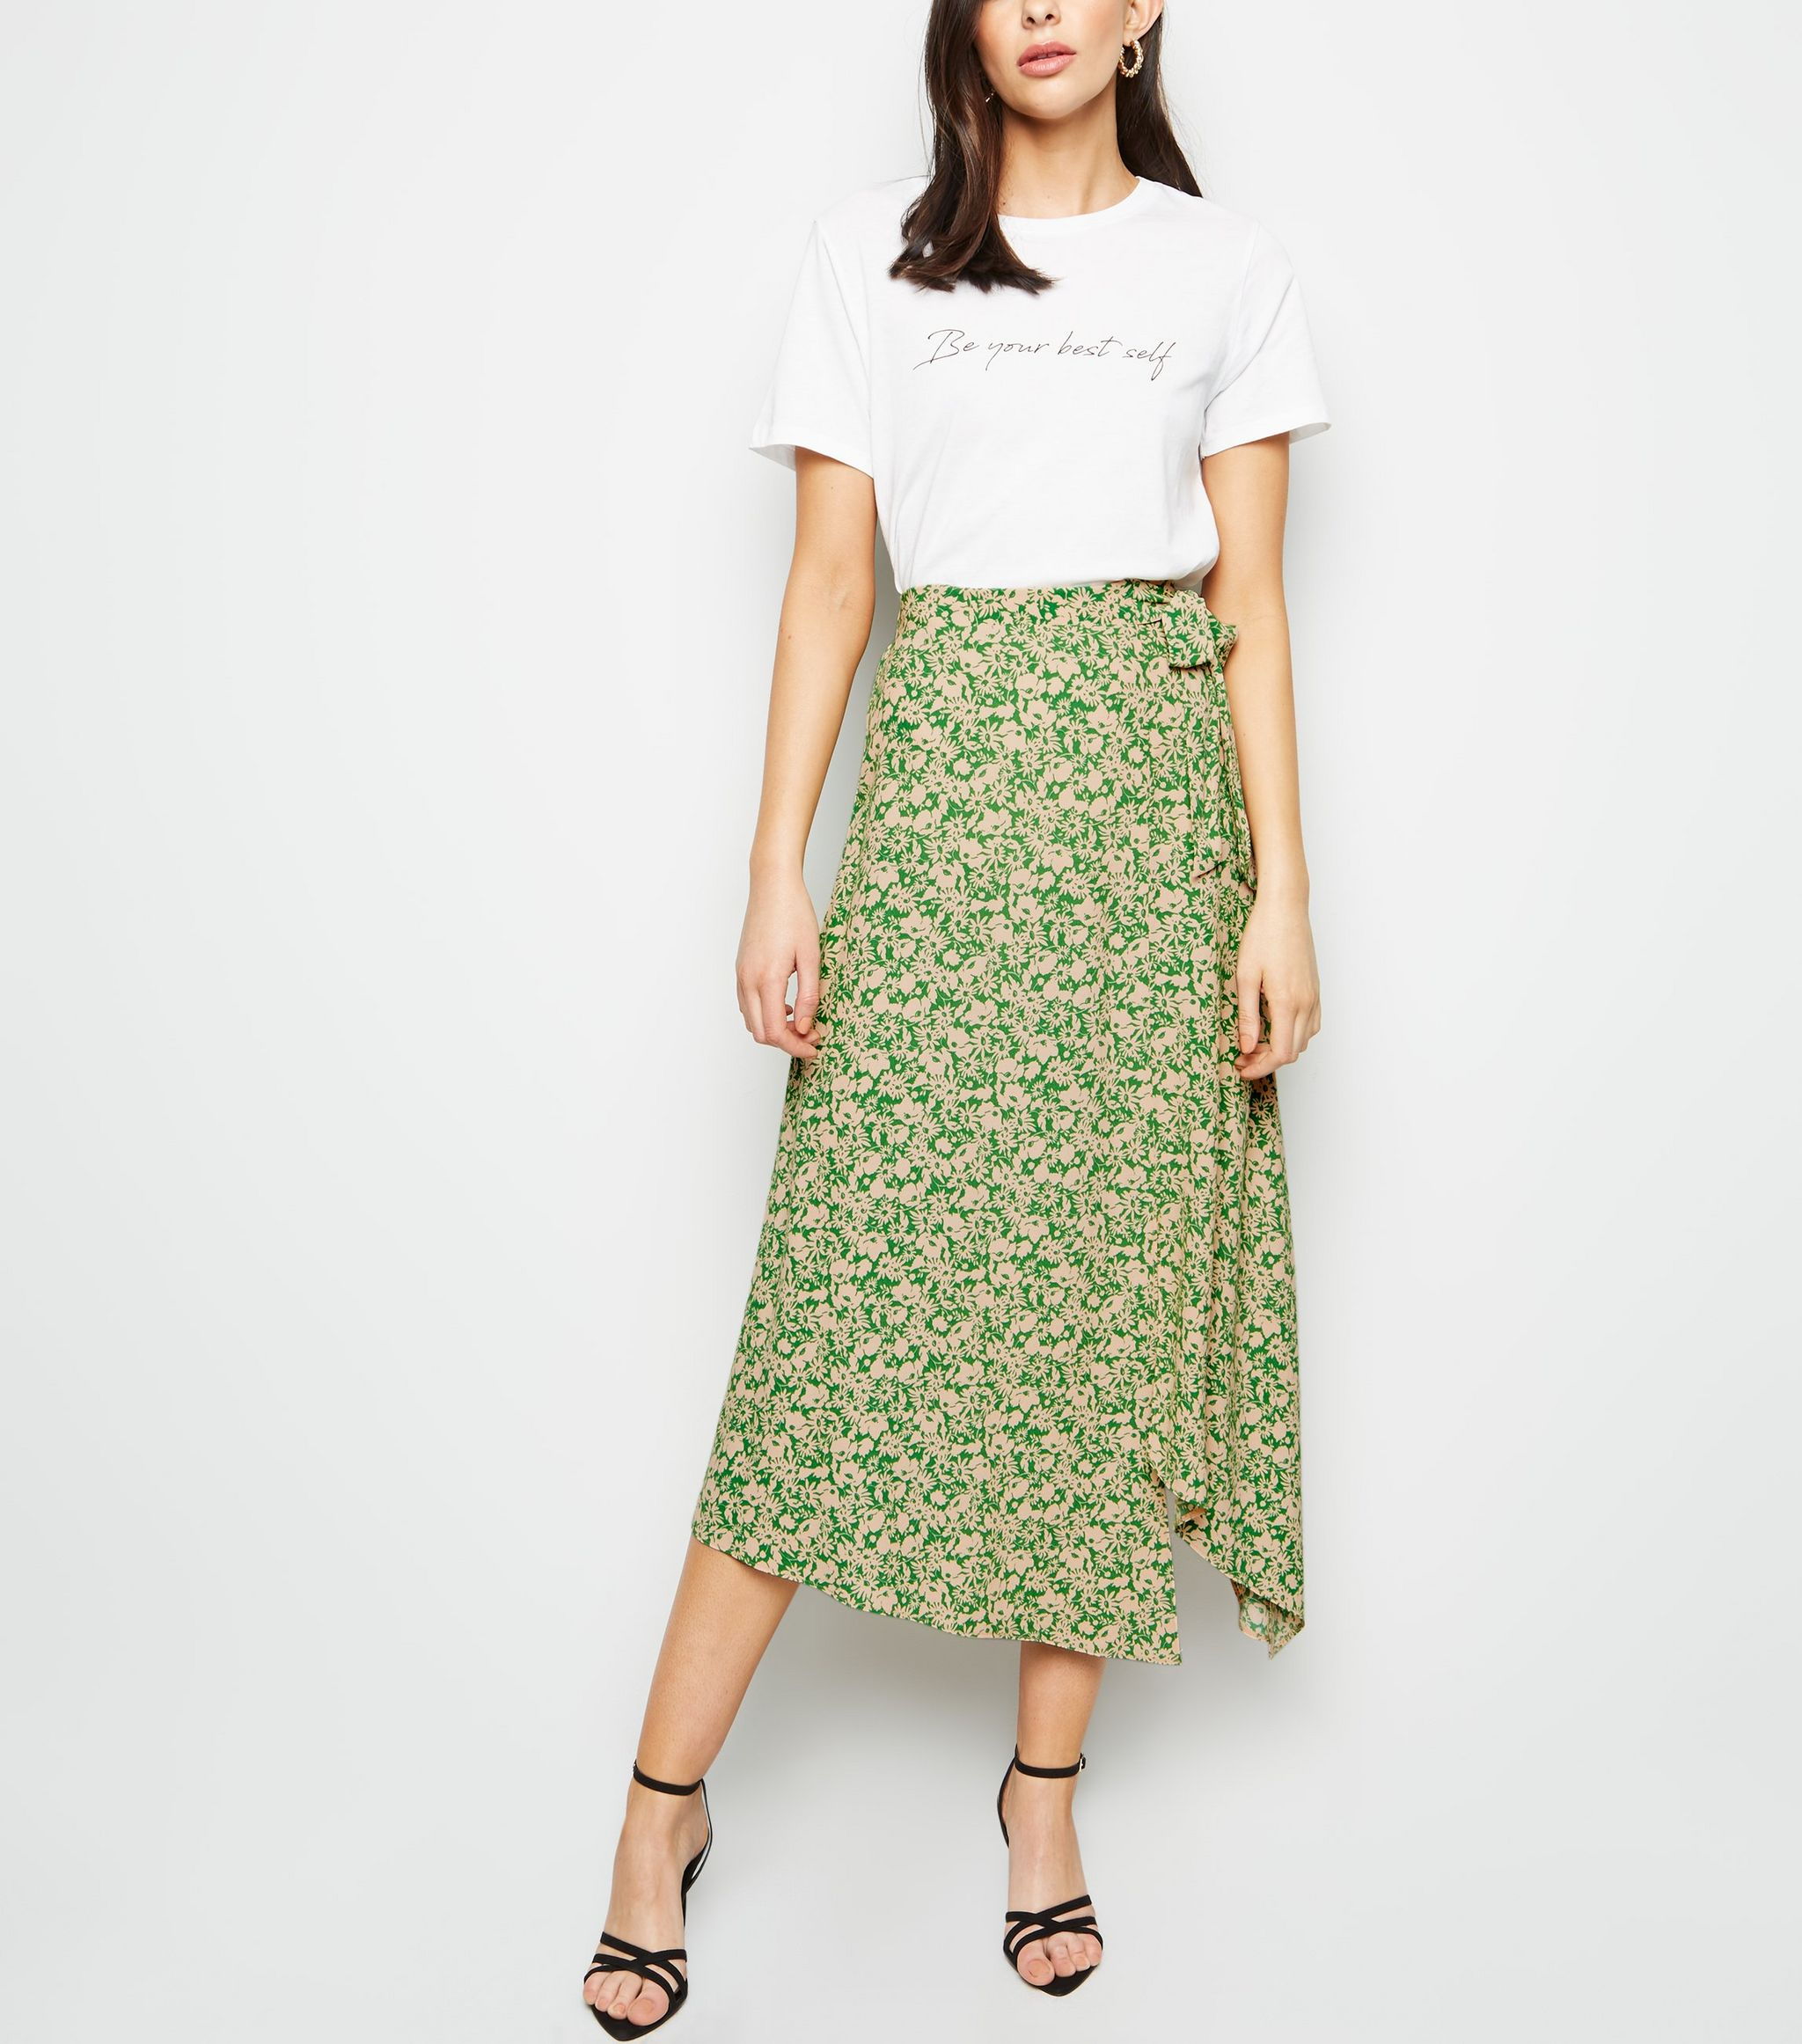 421cfbca5 At €25, the green ditsy floral midi-skirt looks so much more expensive than  it actually is - and is one of those pieces we know we'll be reaching for  again ...